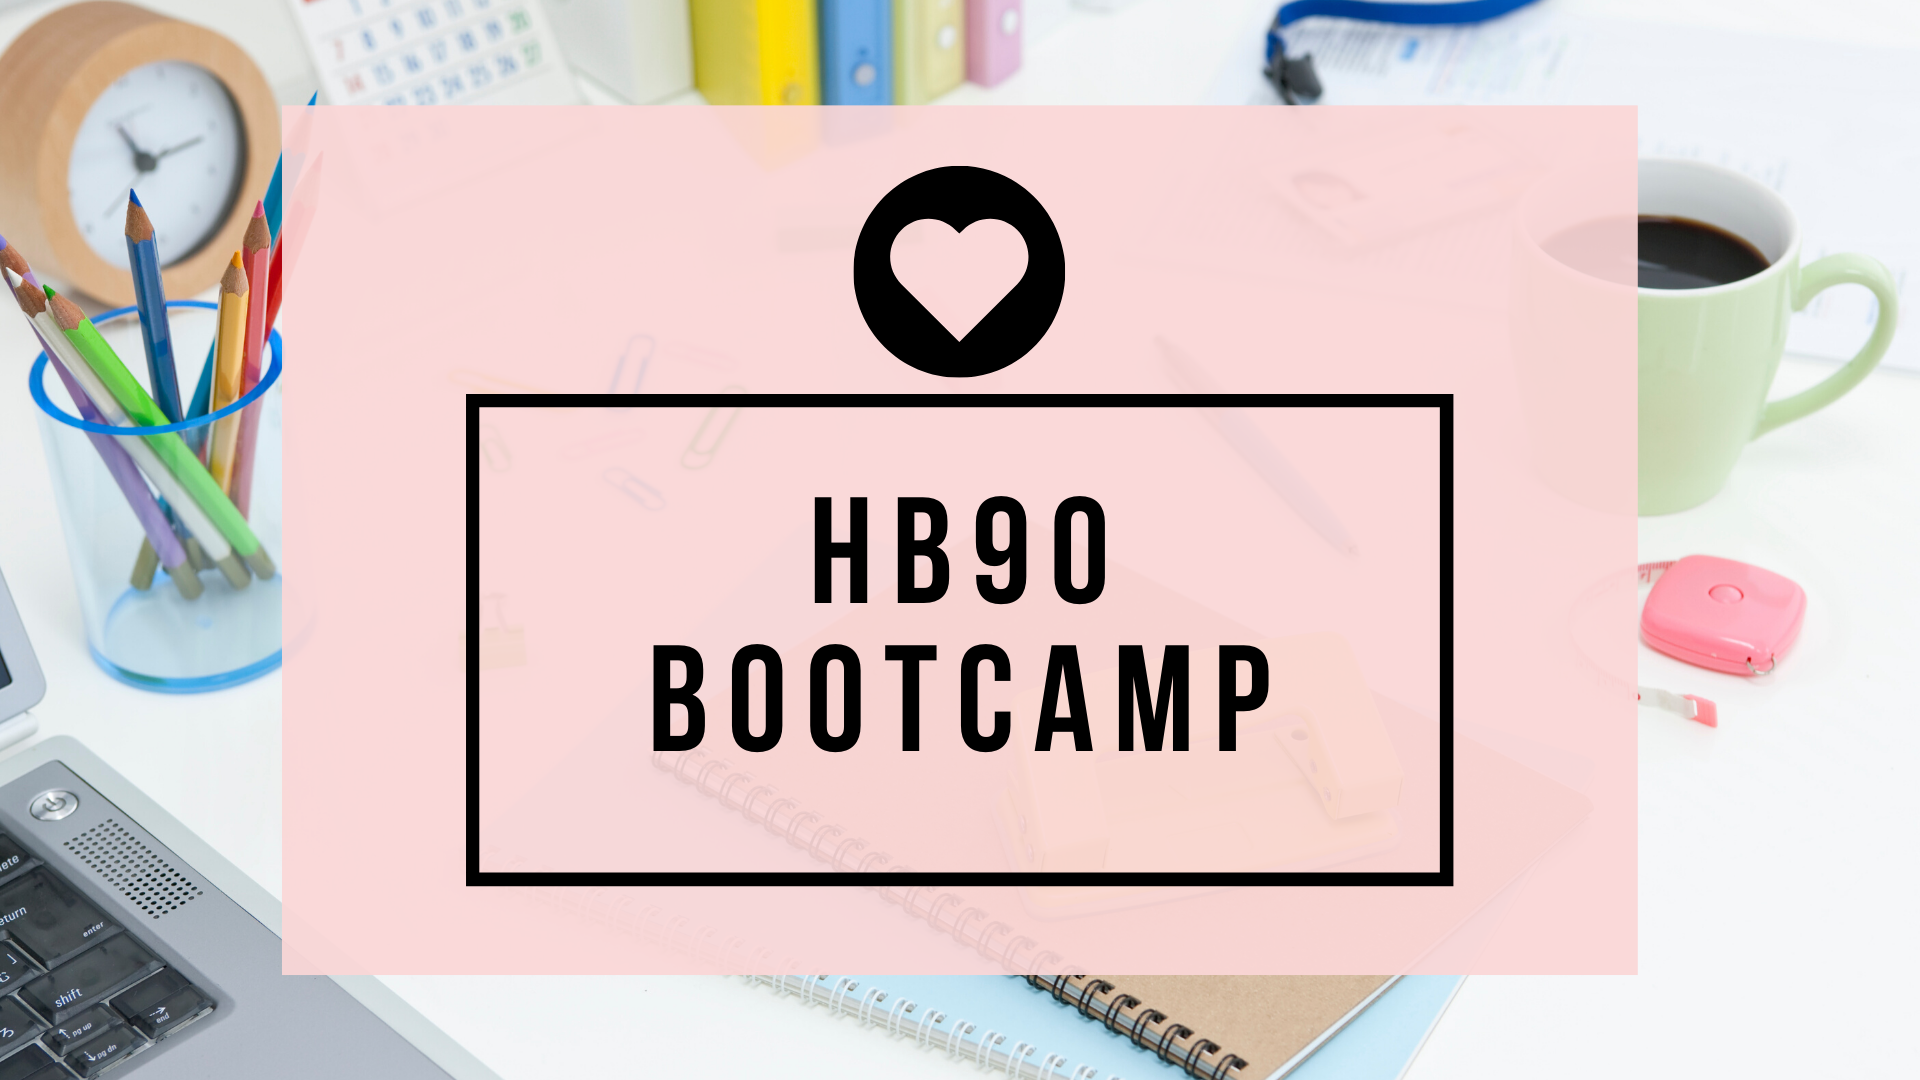 The HB90 Bootcamp Starts Today!